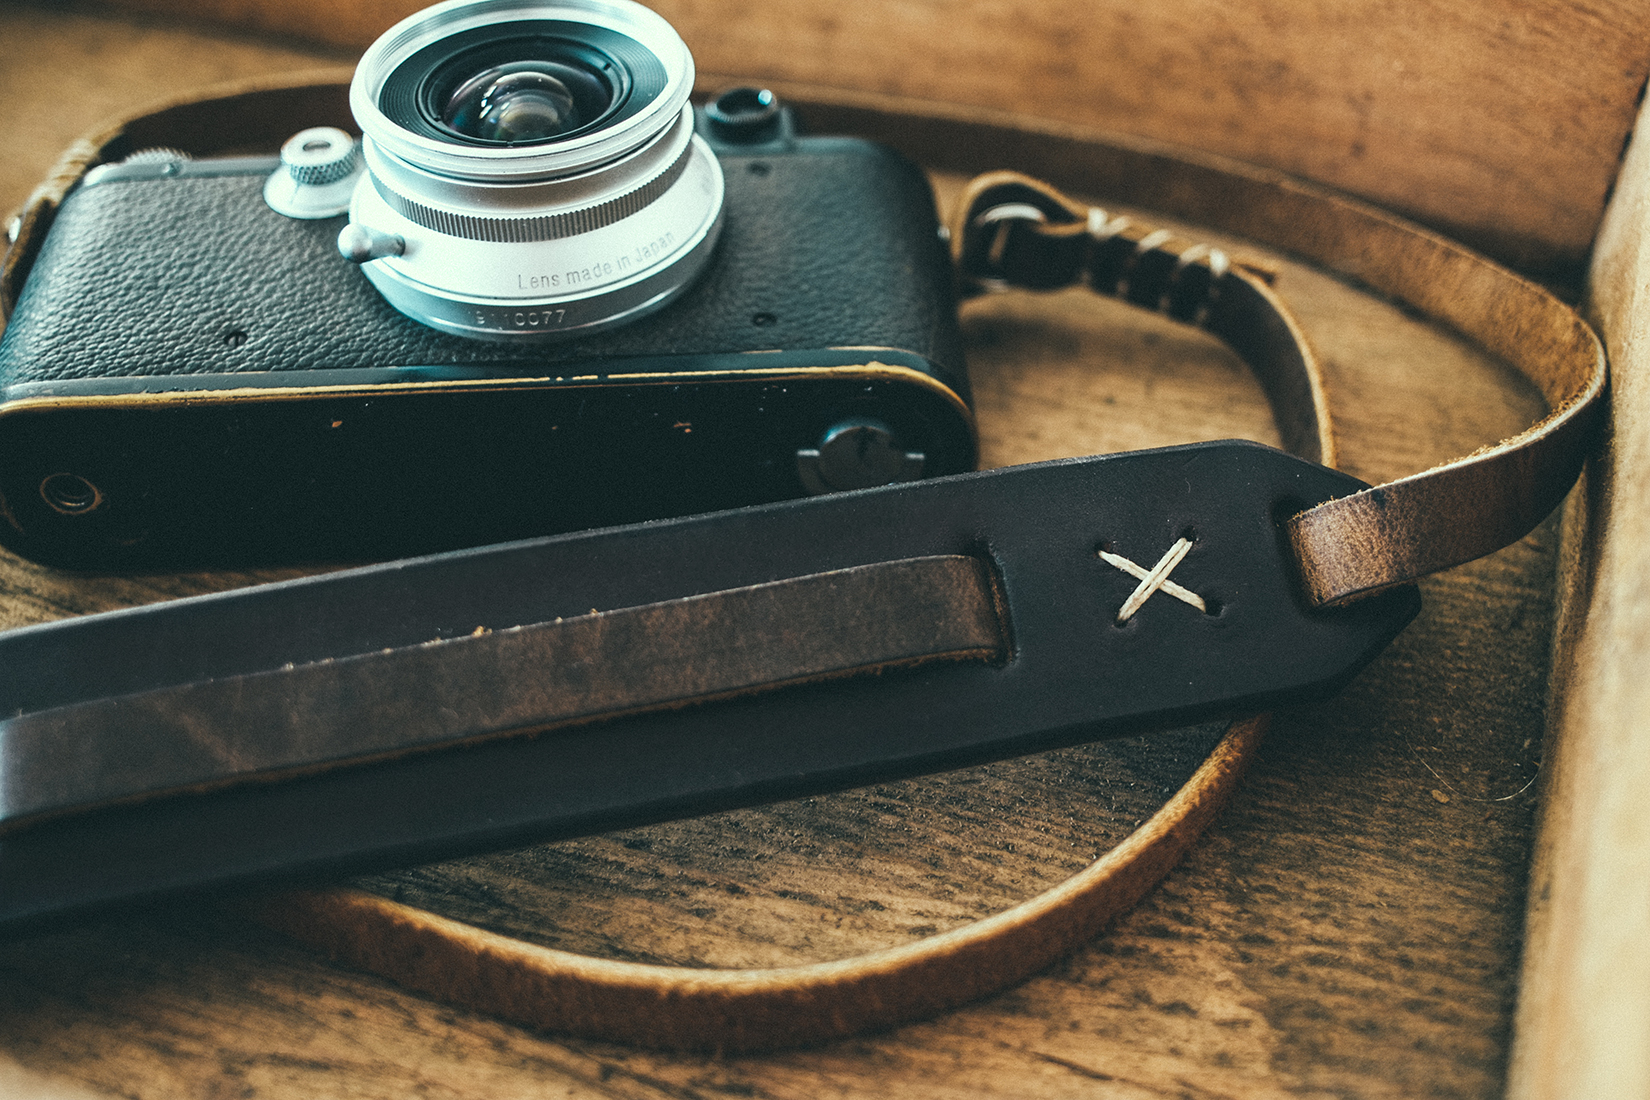 The beautiful camera straps from Cub & Company make any camera look better.